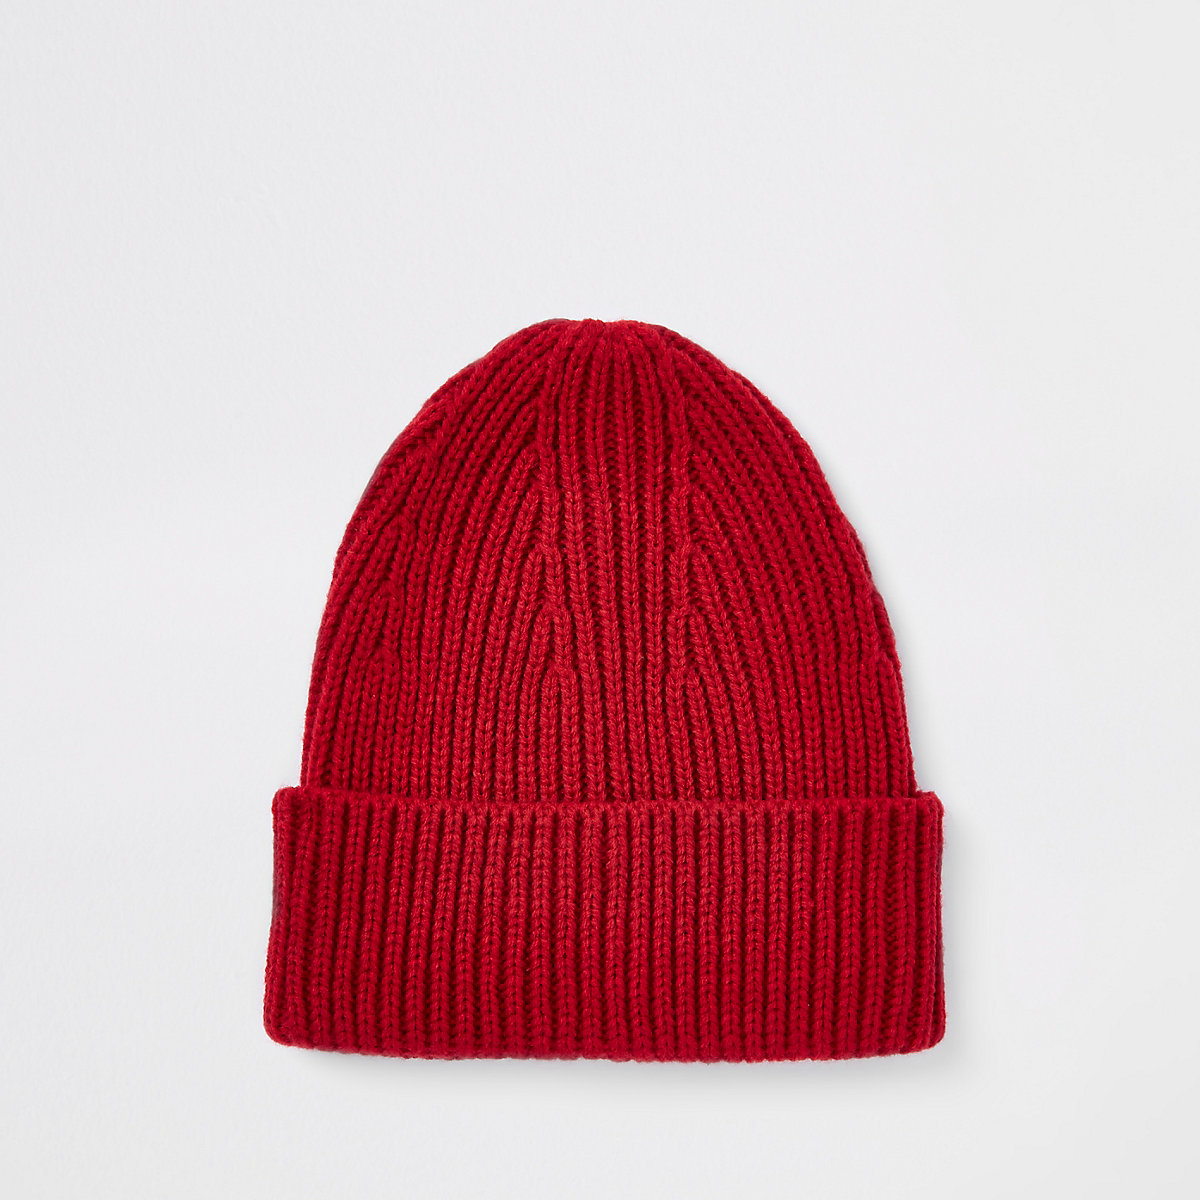 Red fisherman knit beanie hat